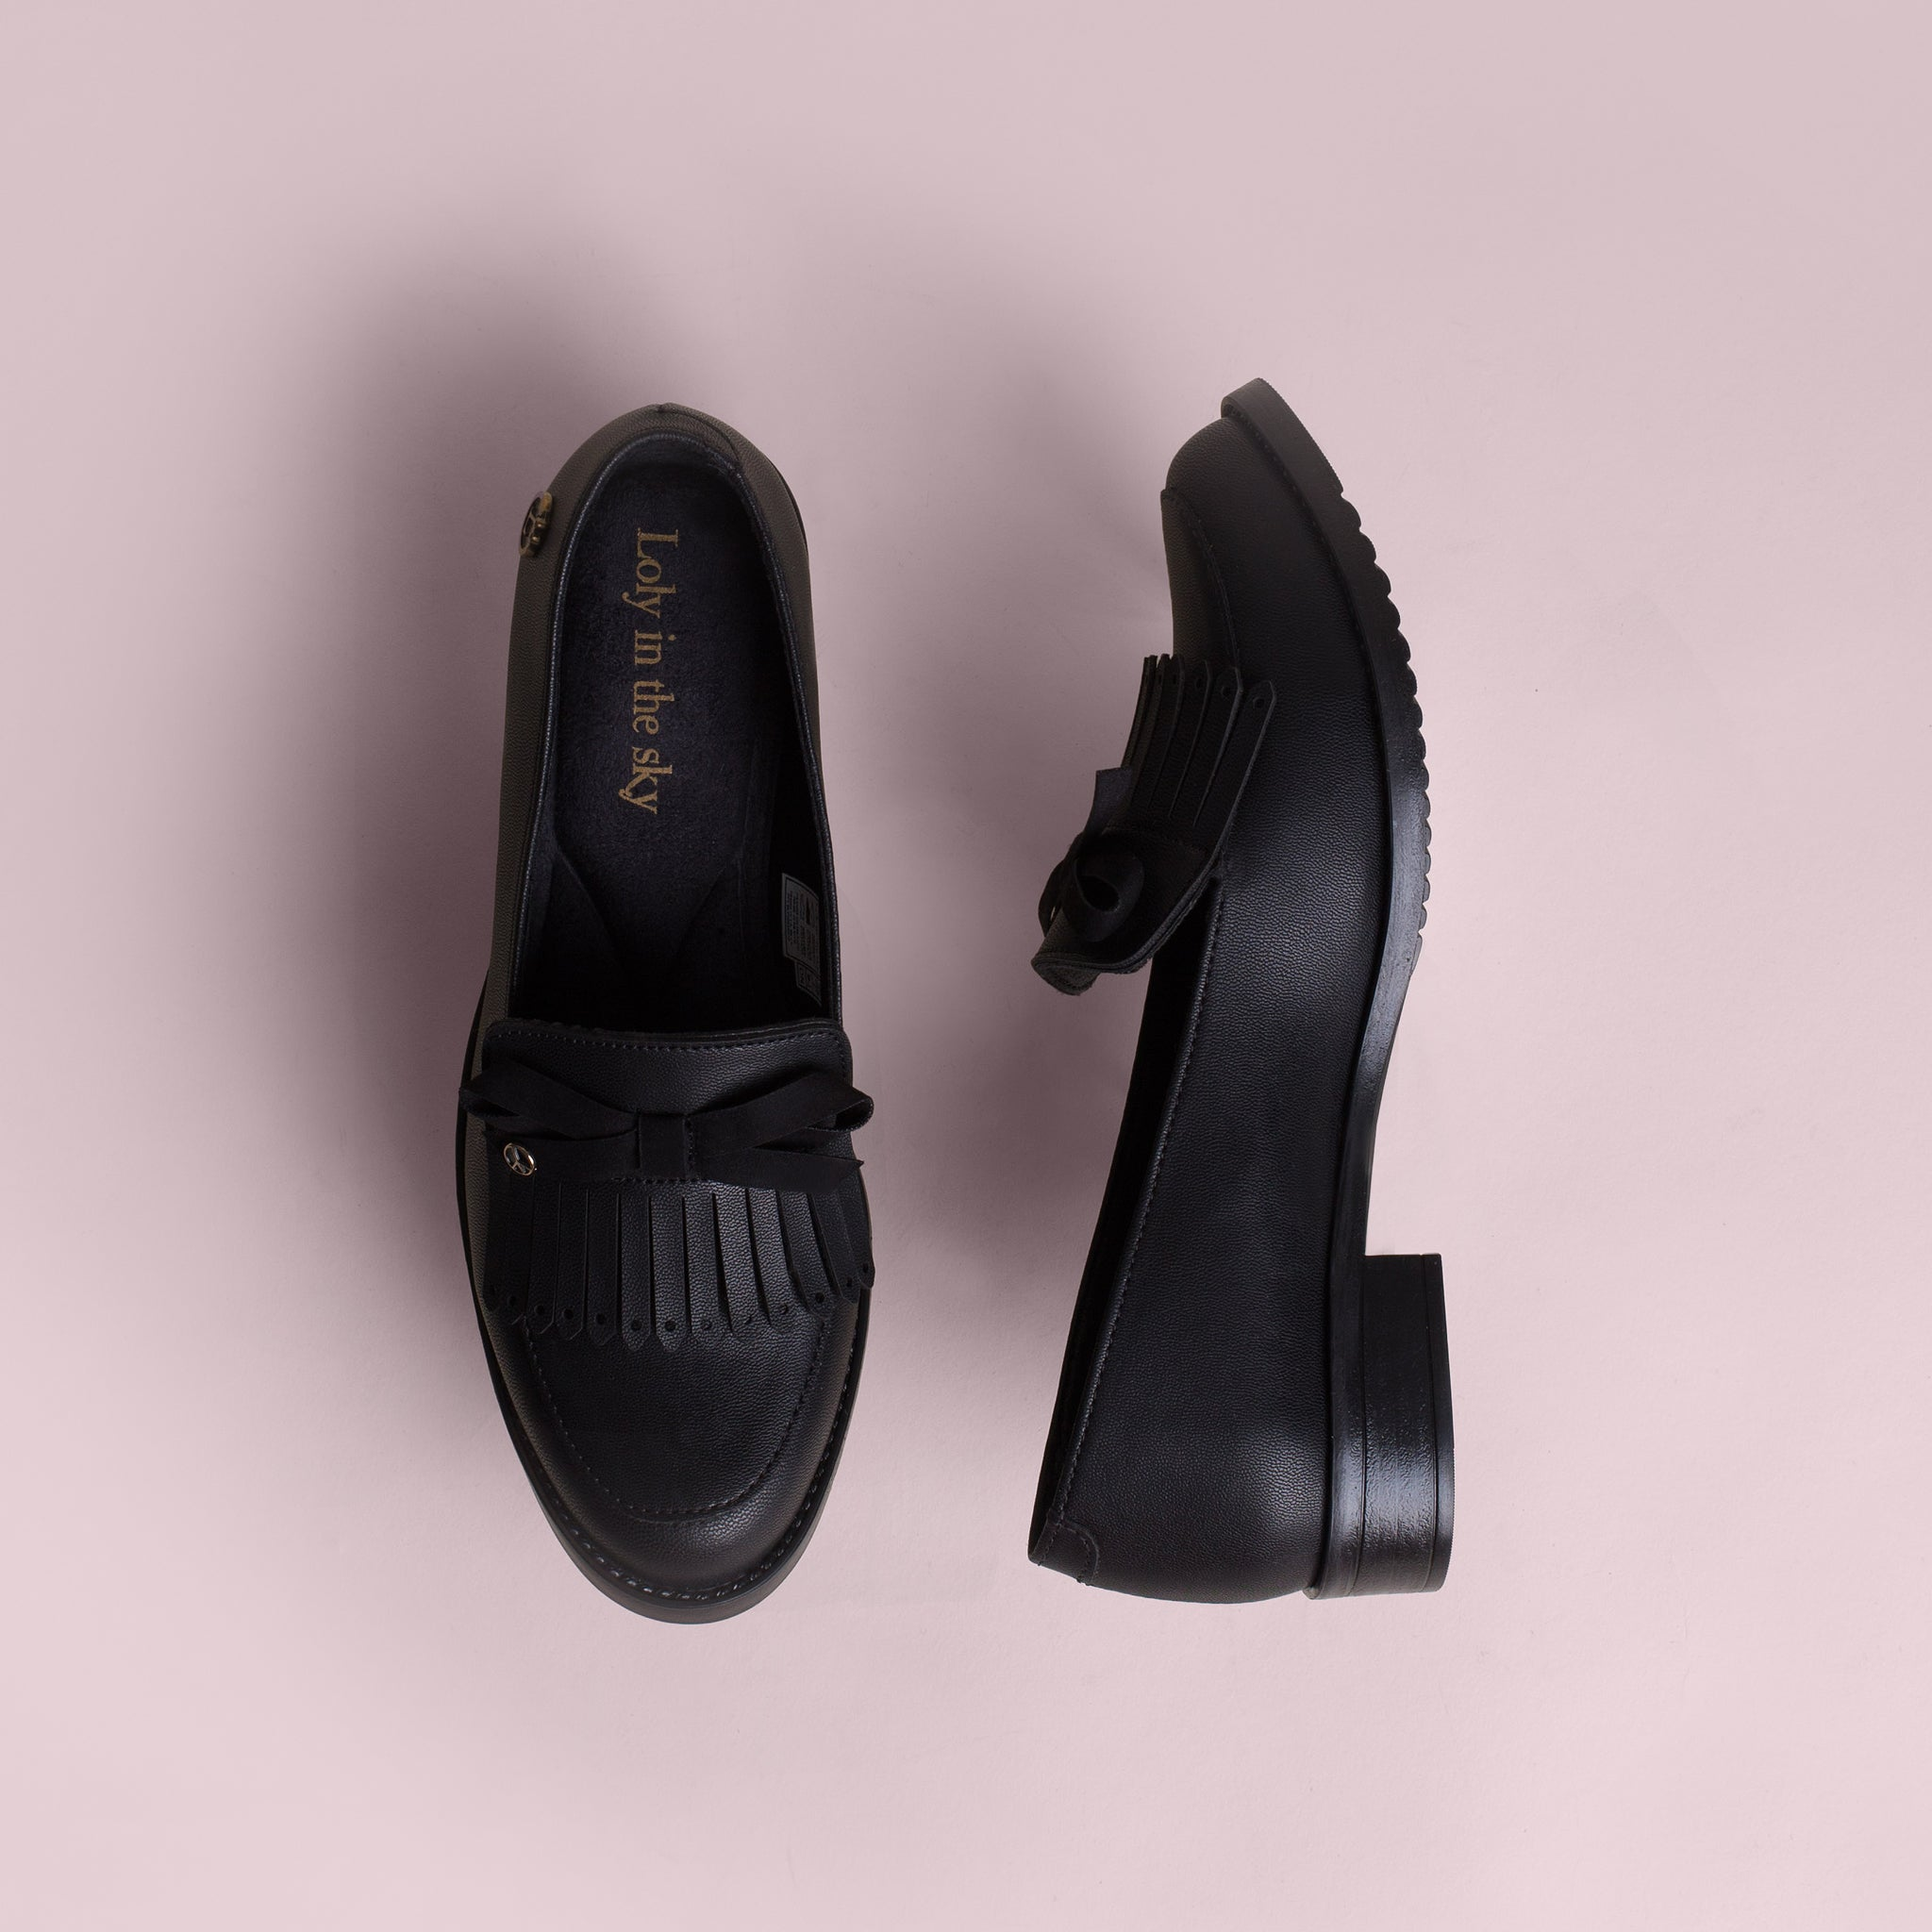 HARMONY | LOAFERS NEGROS PARA MUJER | LOLY IN THE SKY